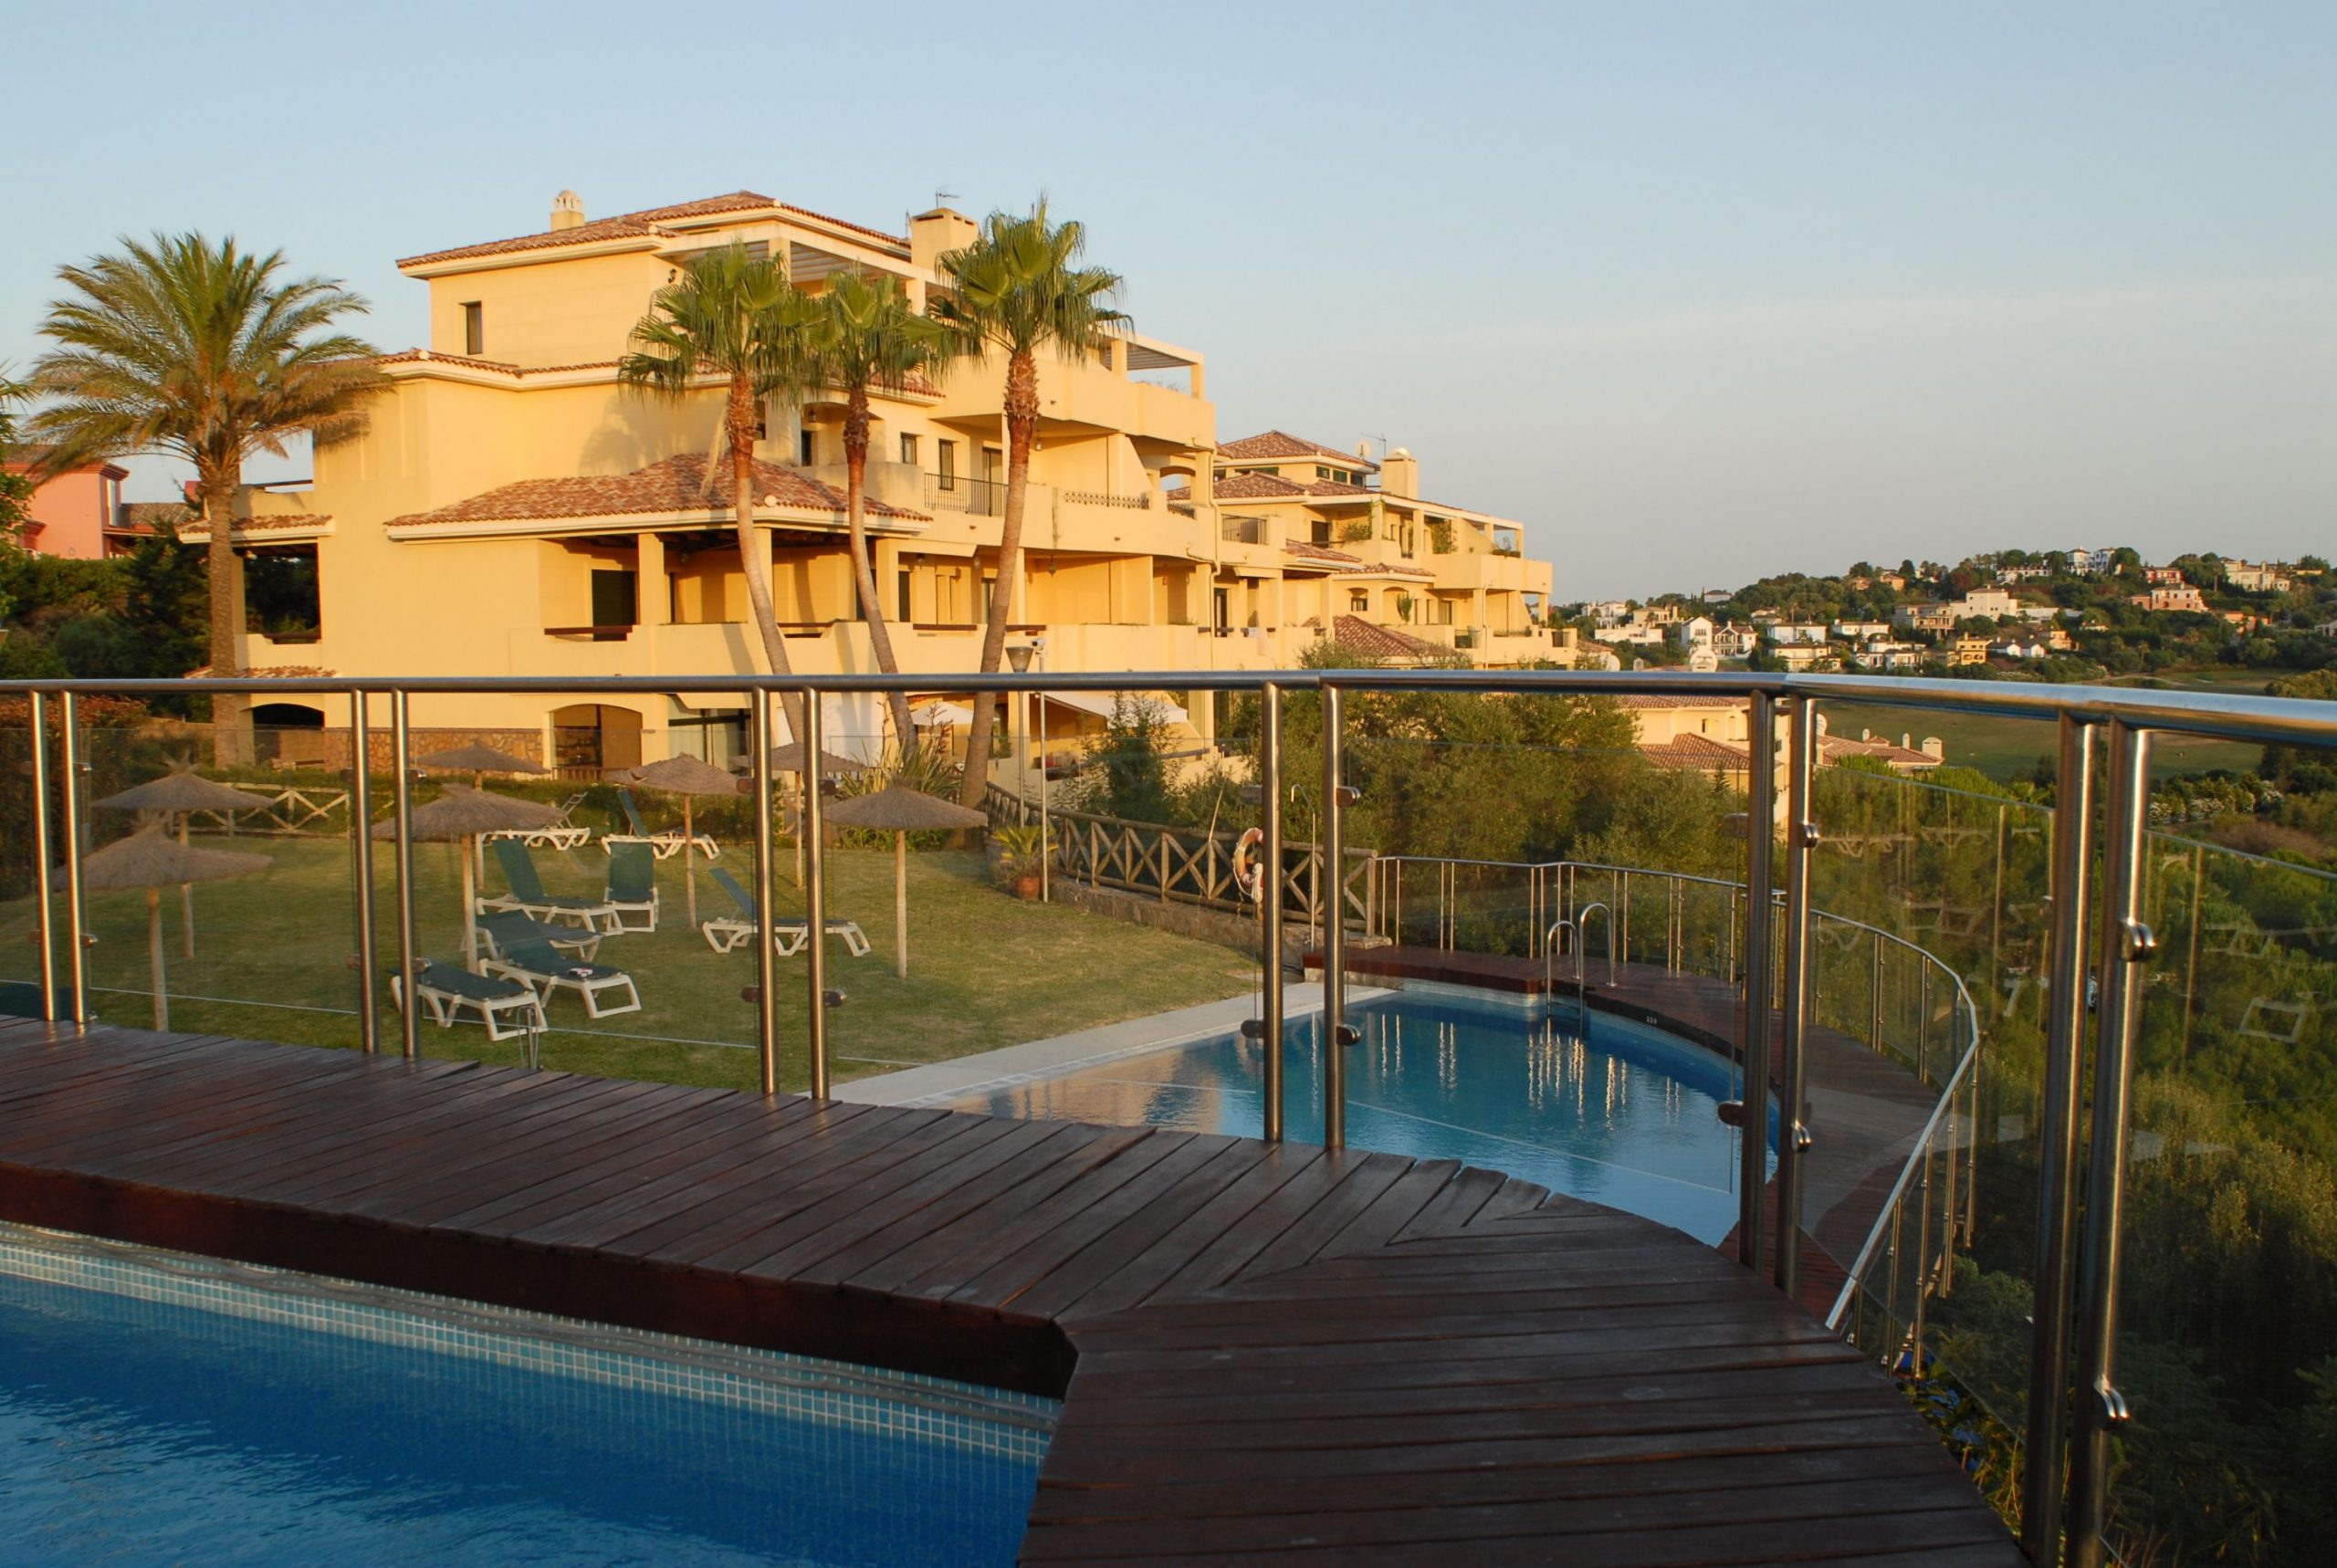 Fantastic 3 bedroom apartment in Sotggrande alto available for long term rental